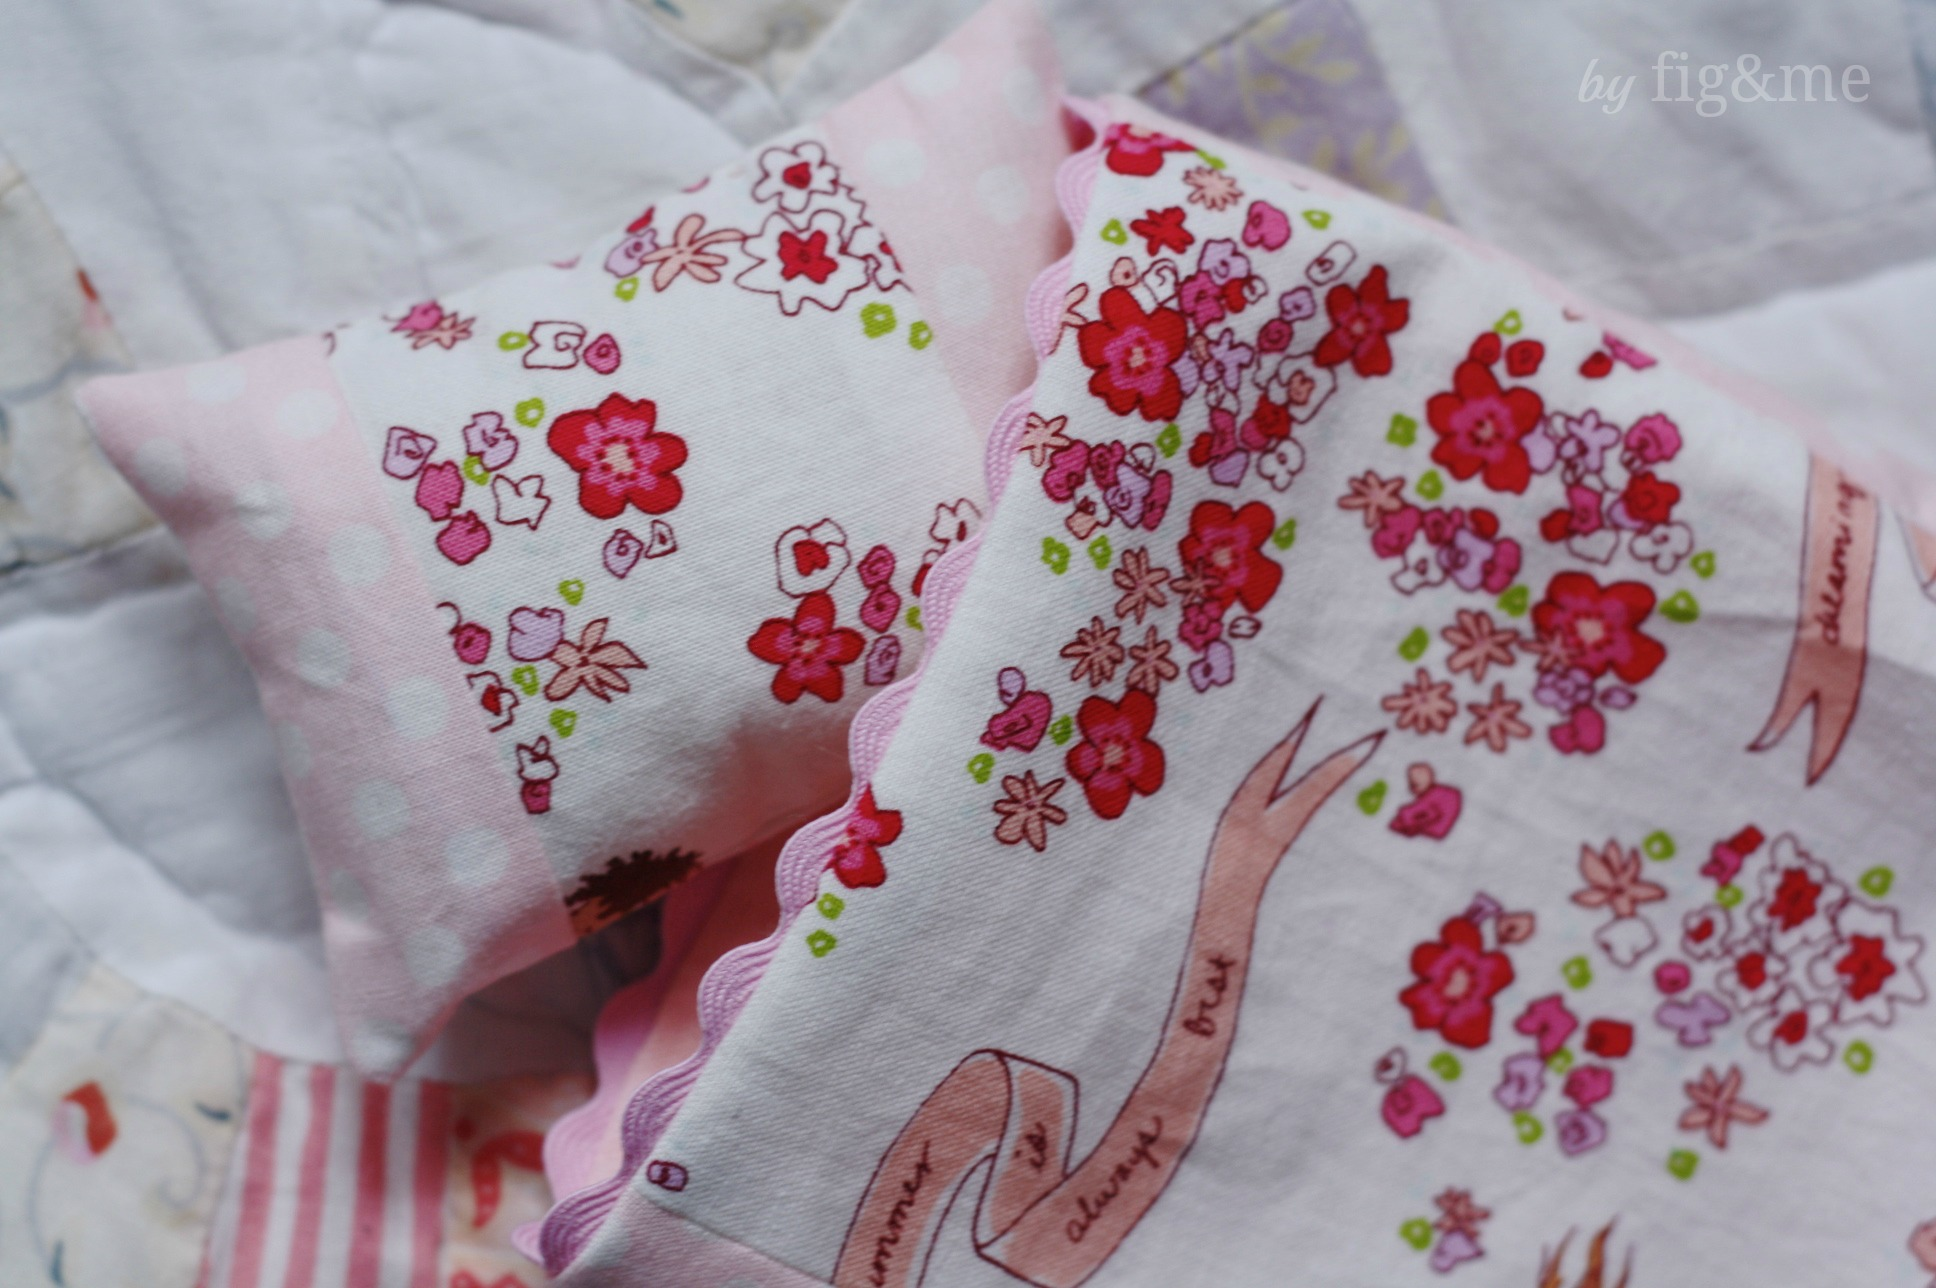 Doll bedding made with Sarah Jane fabrics, by Fig and Me.